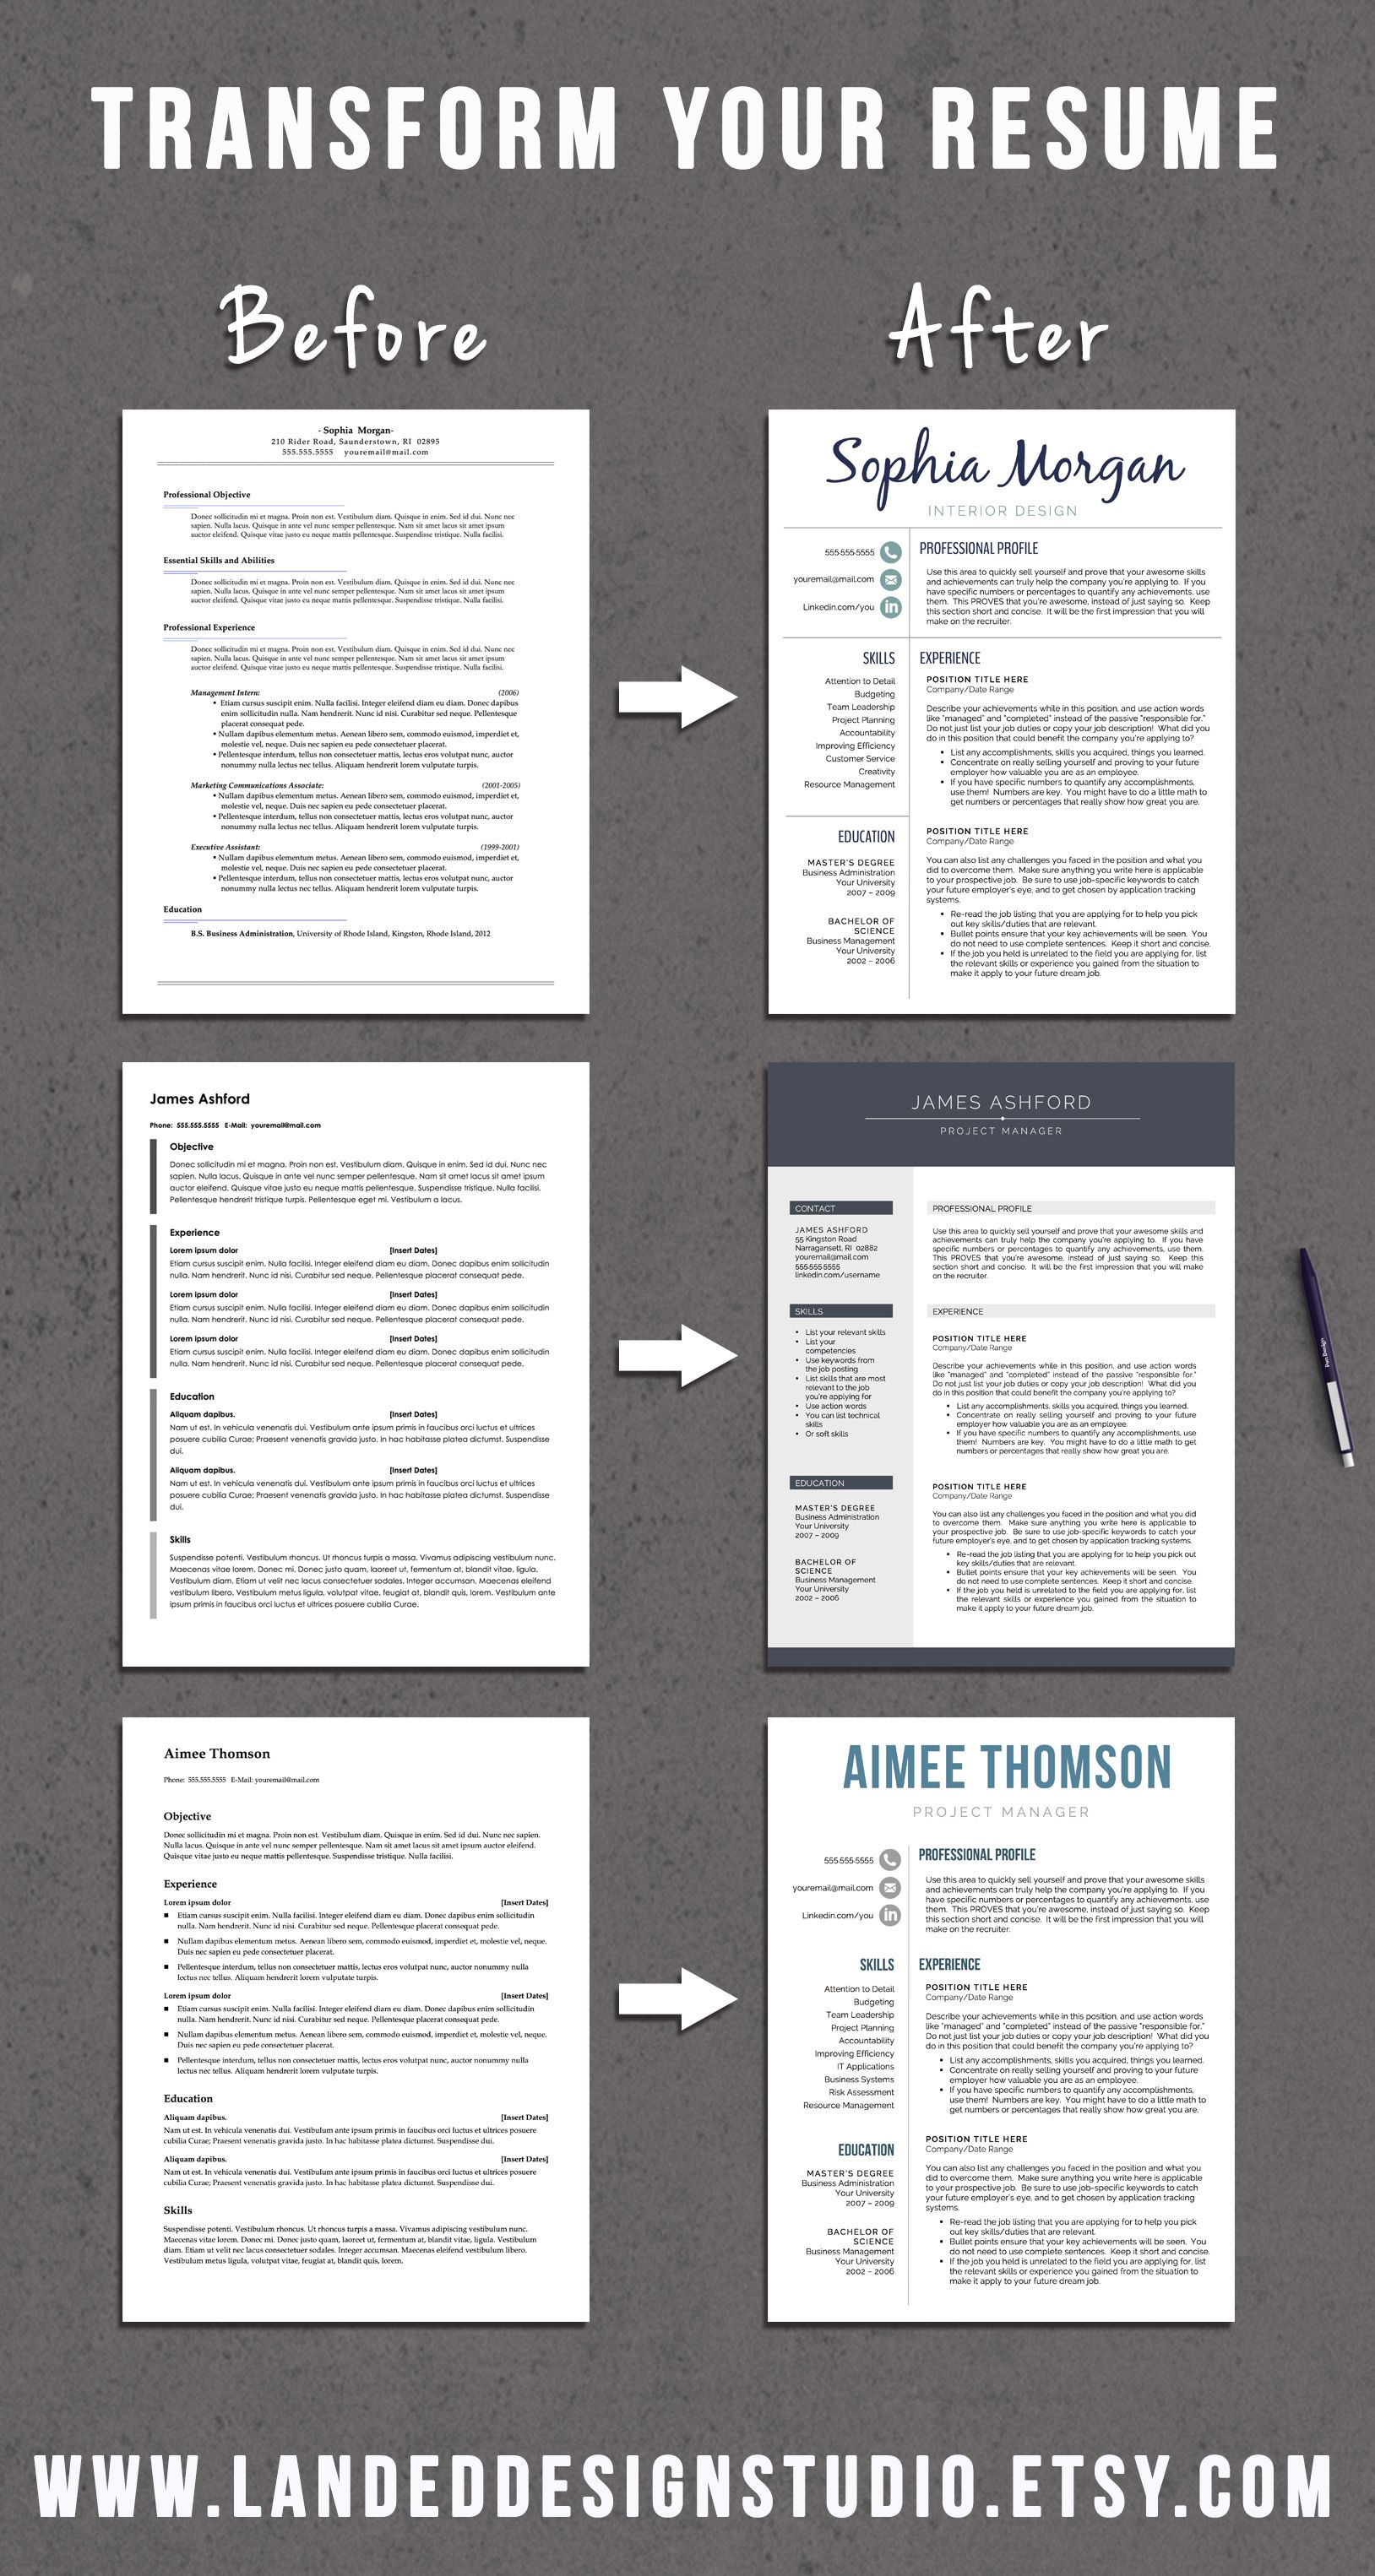 make your resume awesome for 2019 get resume advice get career tips get a new resume design